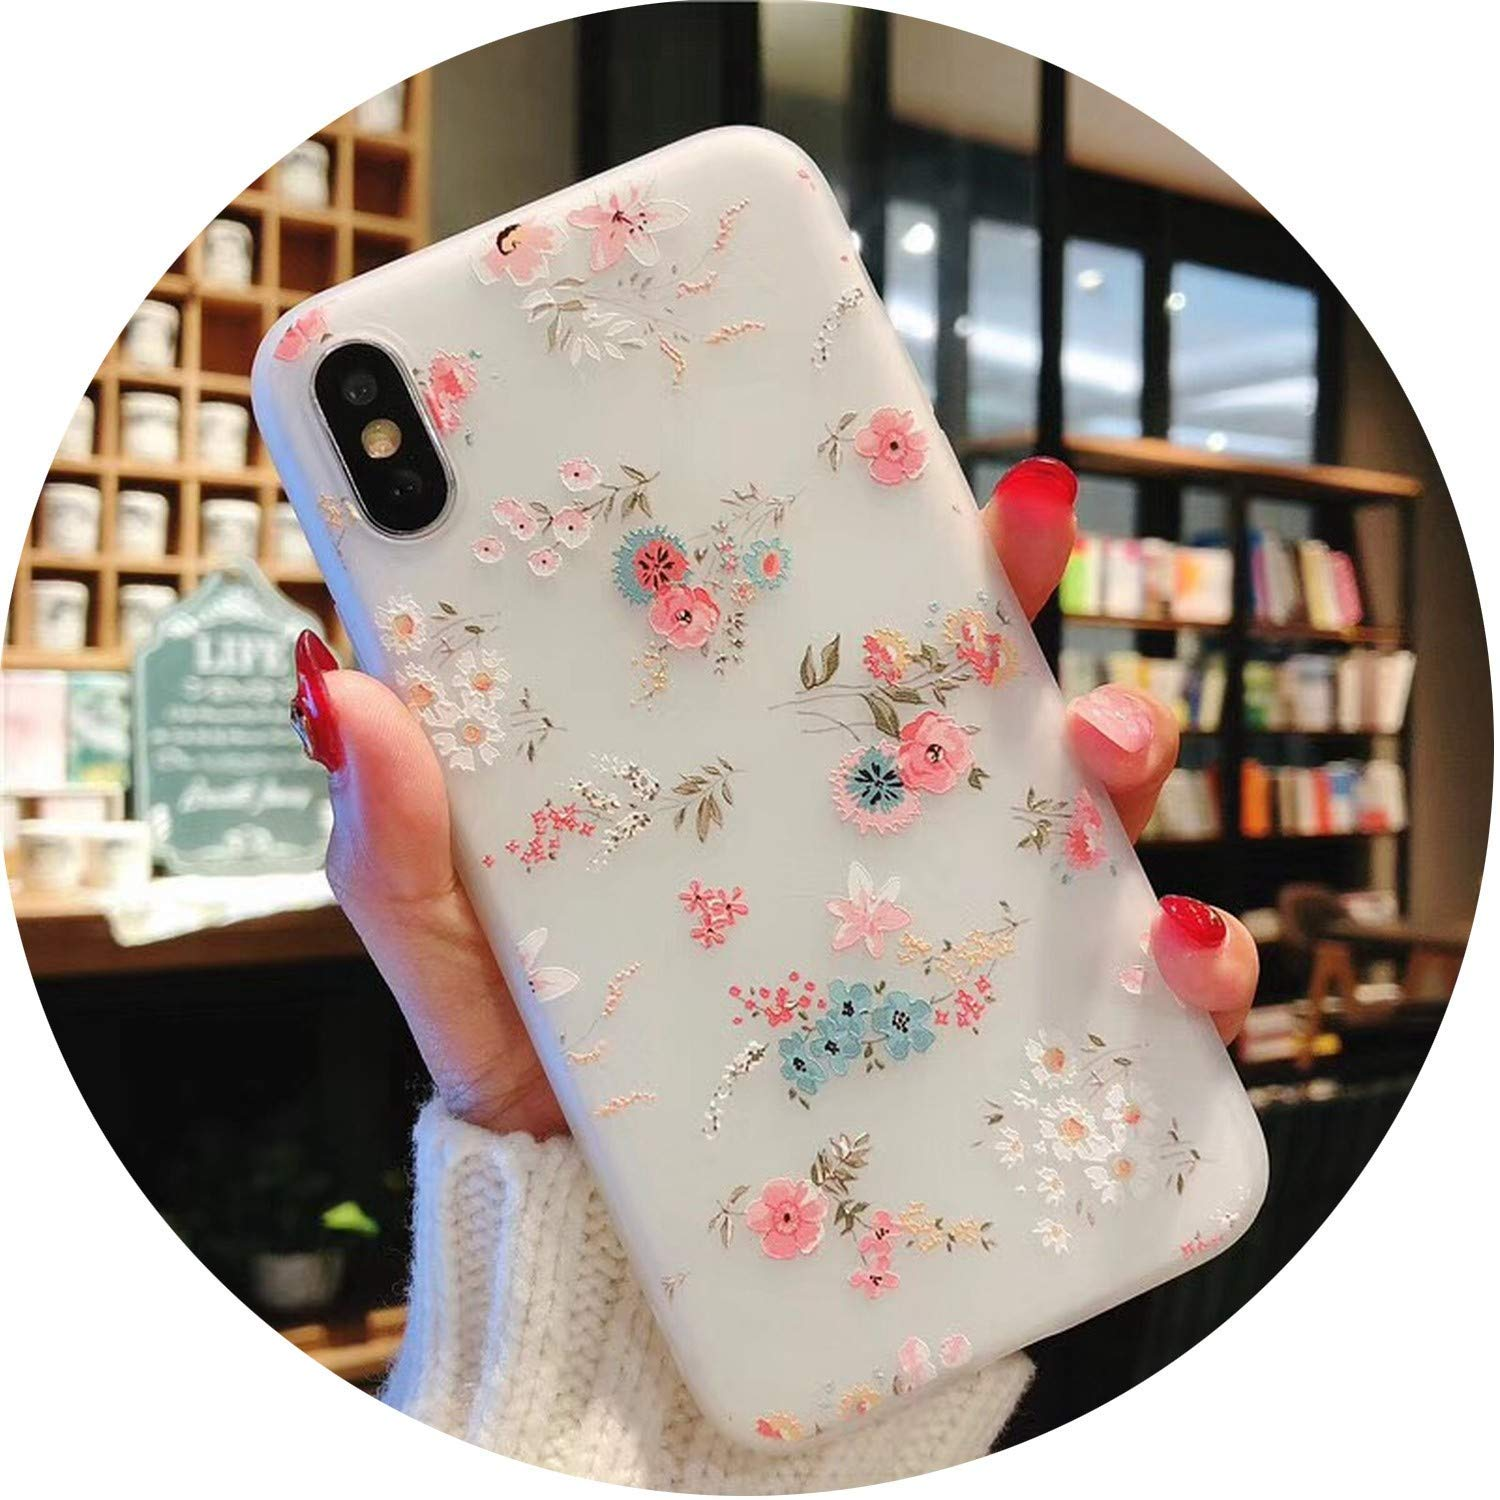 Phone Case for iPhone 6 6S 7 8 Plus X Fashion 3D Relief Flower Flamingo Leaf Cat Dog Watermelon Soft TPU for iPhone 8, T23, for iPhone 7 Plus HAATVN ADULT